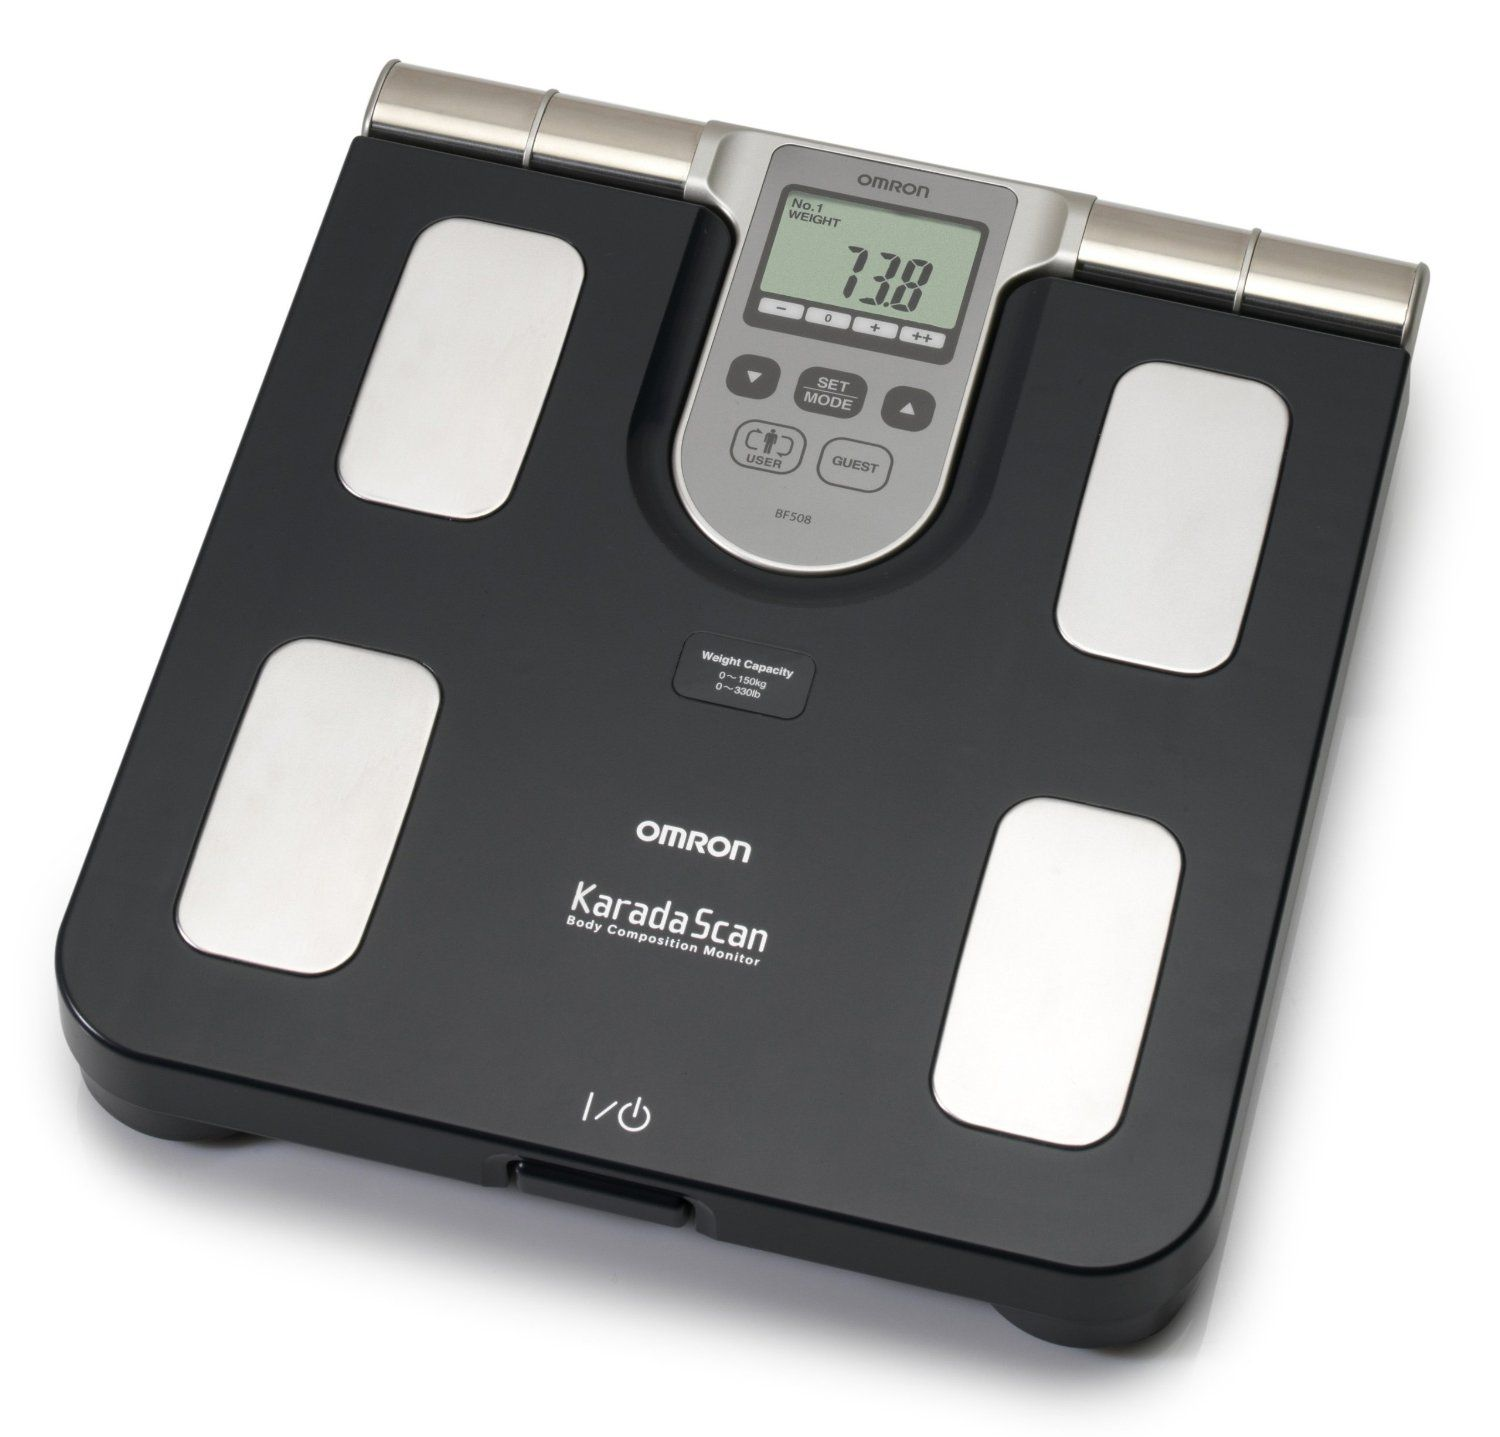 Amazon scale bathroom - Omron Bf508 Body Composition And Body Fat Monitor Bathroom Scale Amazon Co Uk